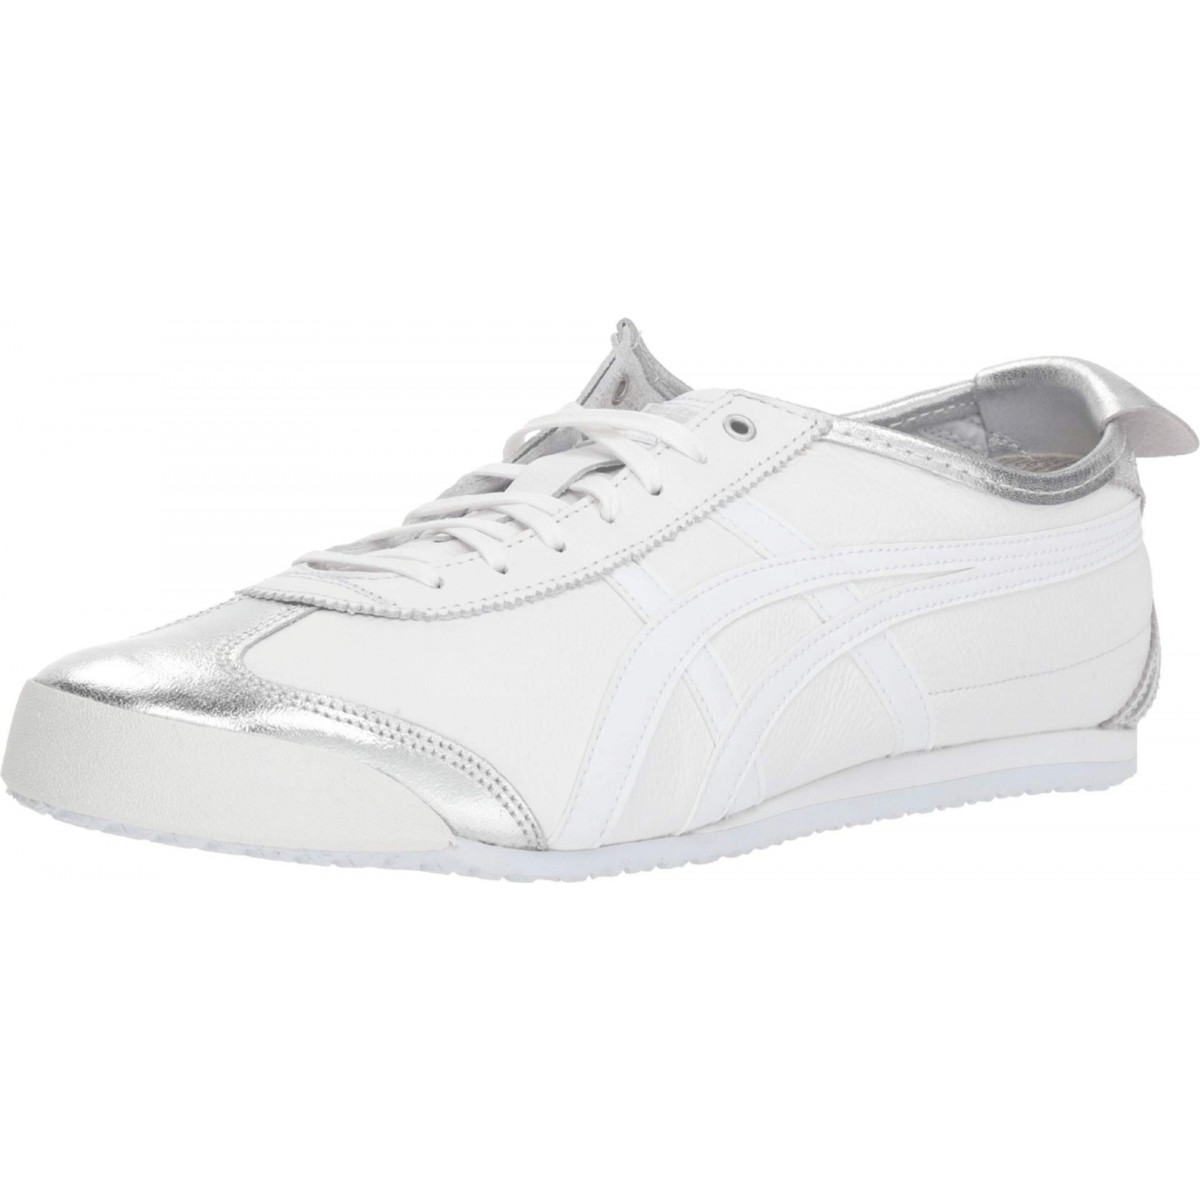 buy online 57a00 b7197 Кроссовки Onitsuka Tiger by Asics Mexico 66 Silver, 47 (300 мм) (10103350)